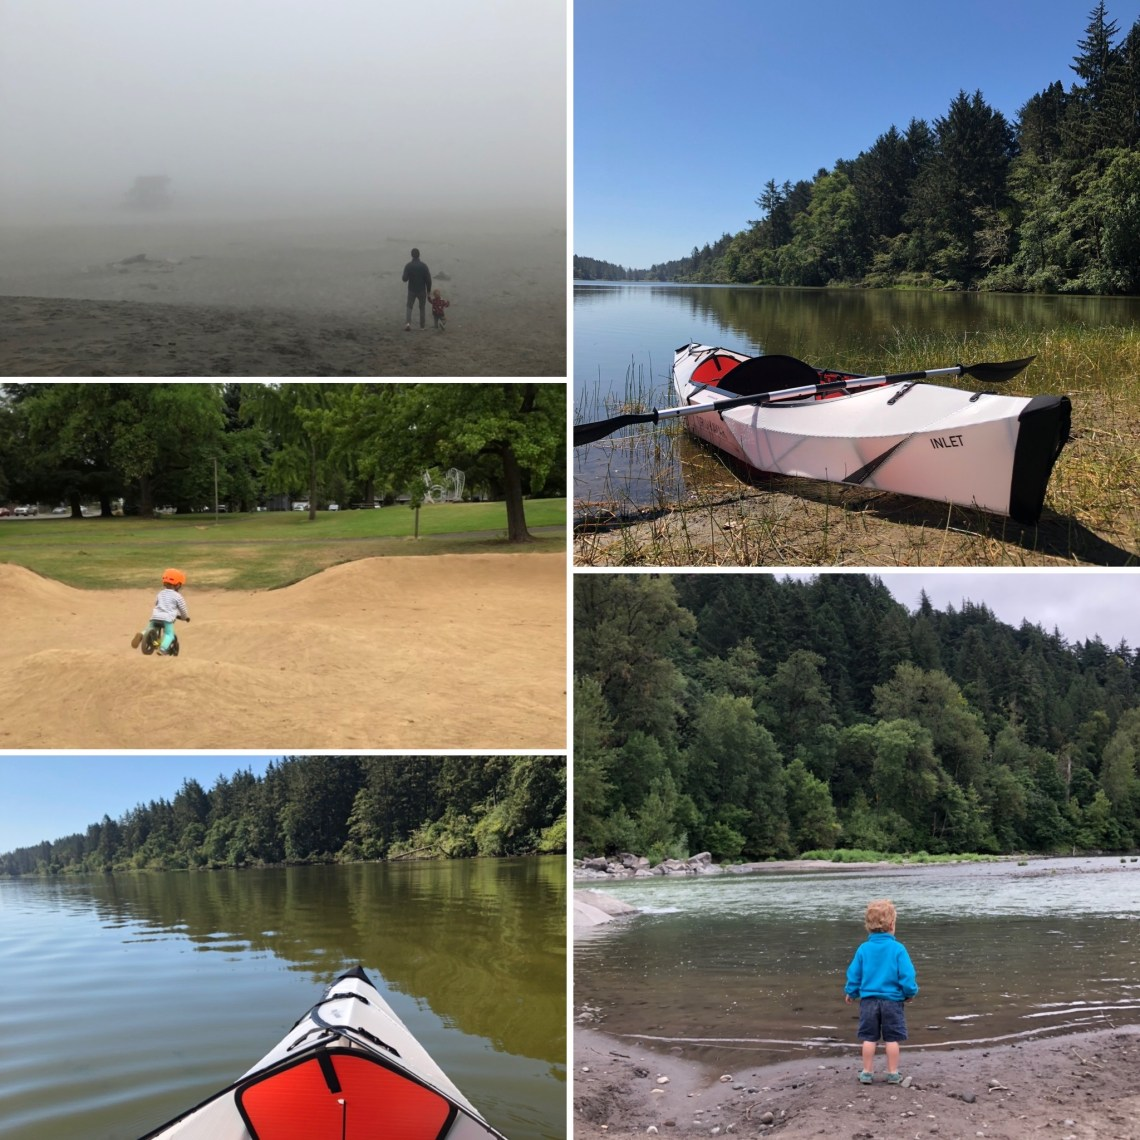 Oru Kayak, Camping at the Coast, Sandy River Play